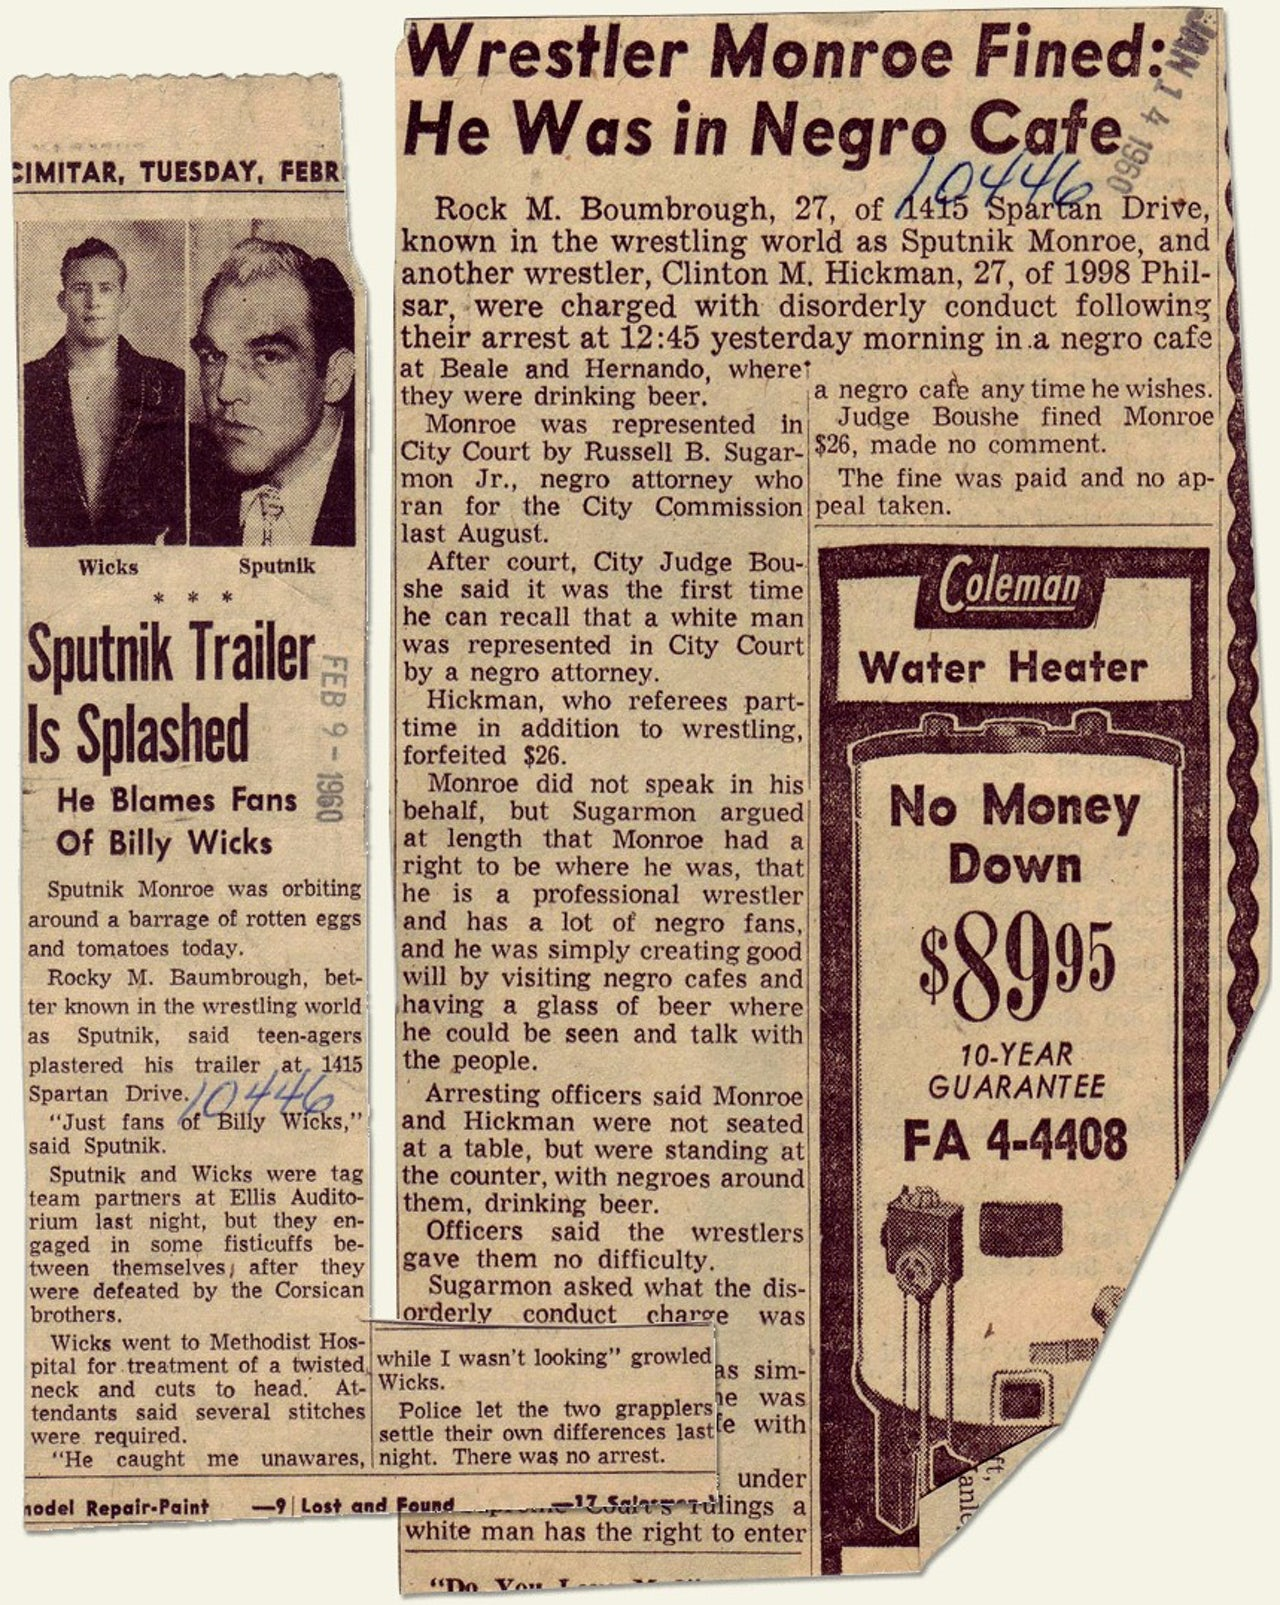 In the late '50s and early '60s, newspaper coverage of Monroe positioned him as a controversial figure in Memphis.